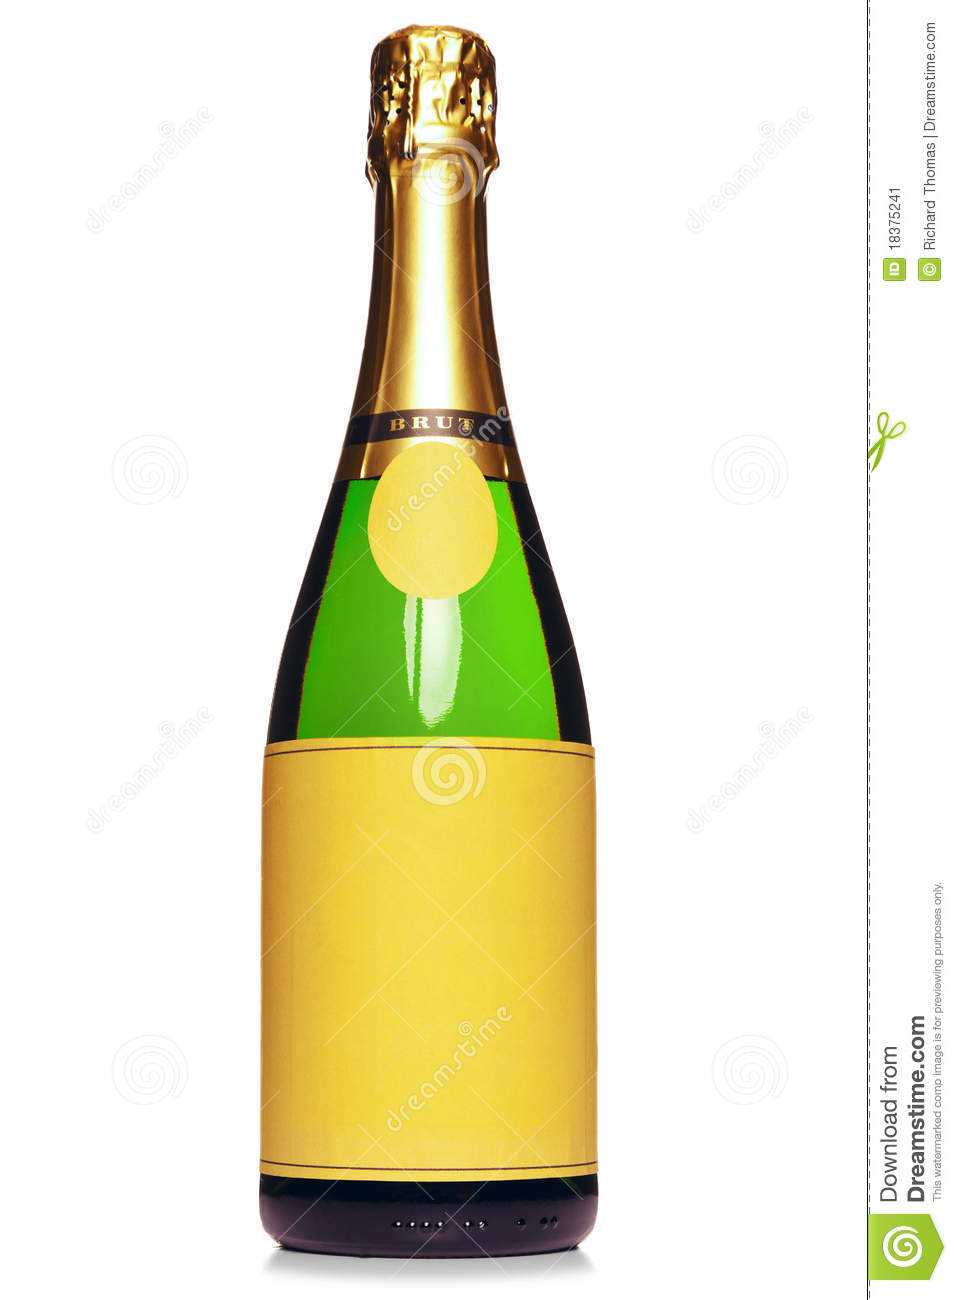 Champagne Bottle Clip Art Champagne bottle isolated on